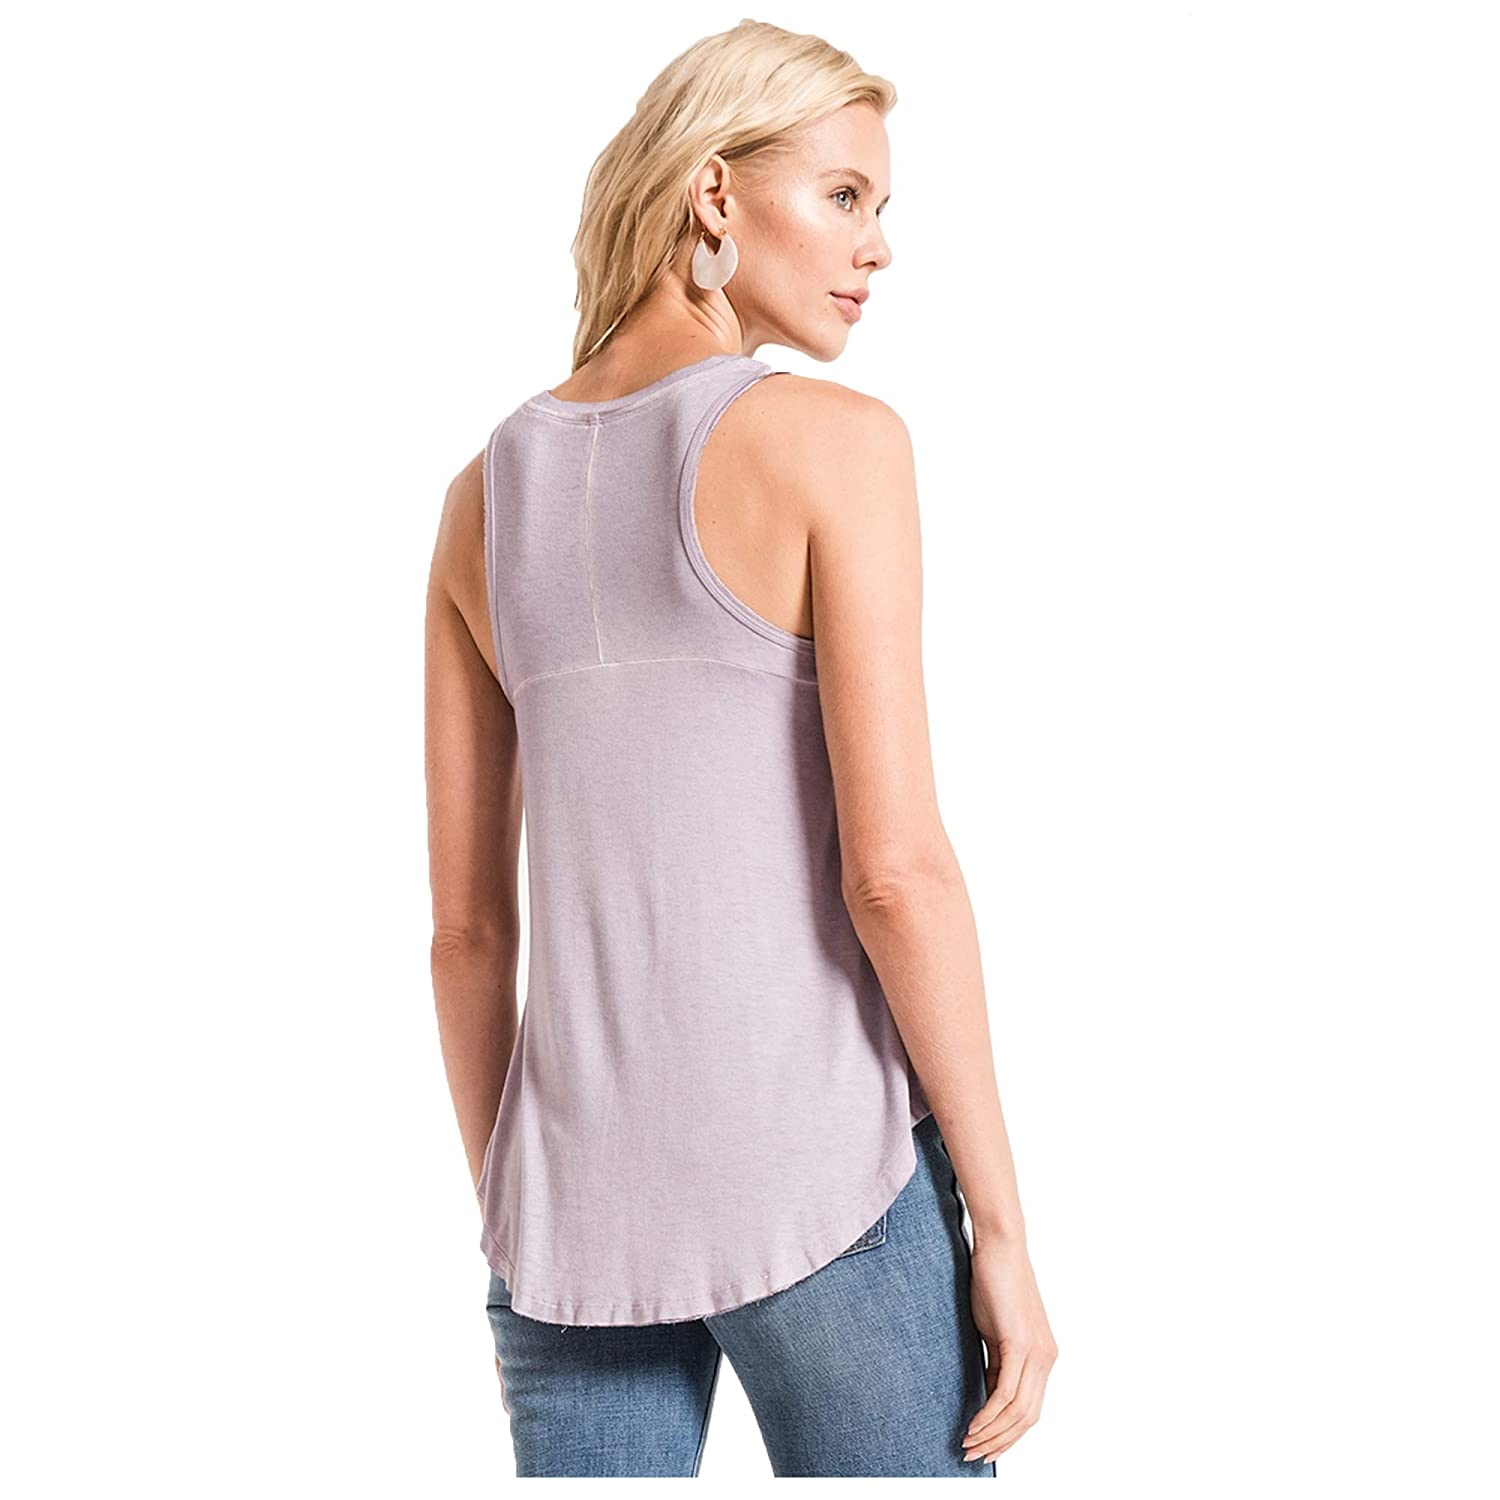 Small Misty Lilac Z SUPPLY Clothing Womens Vagabond V Neck Tank Top